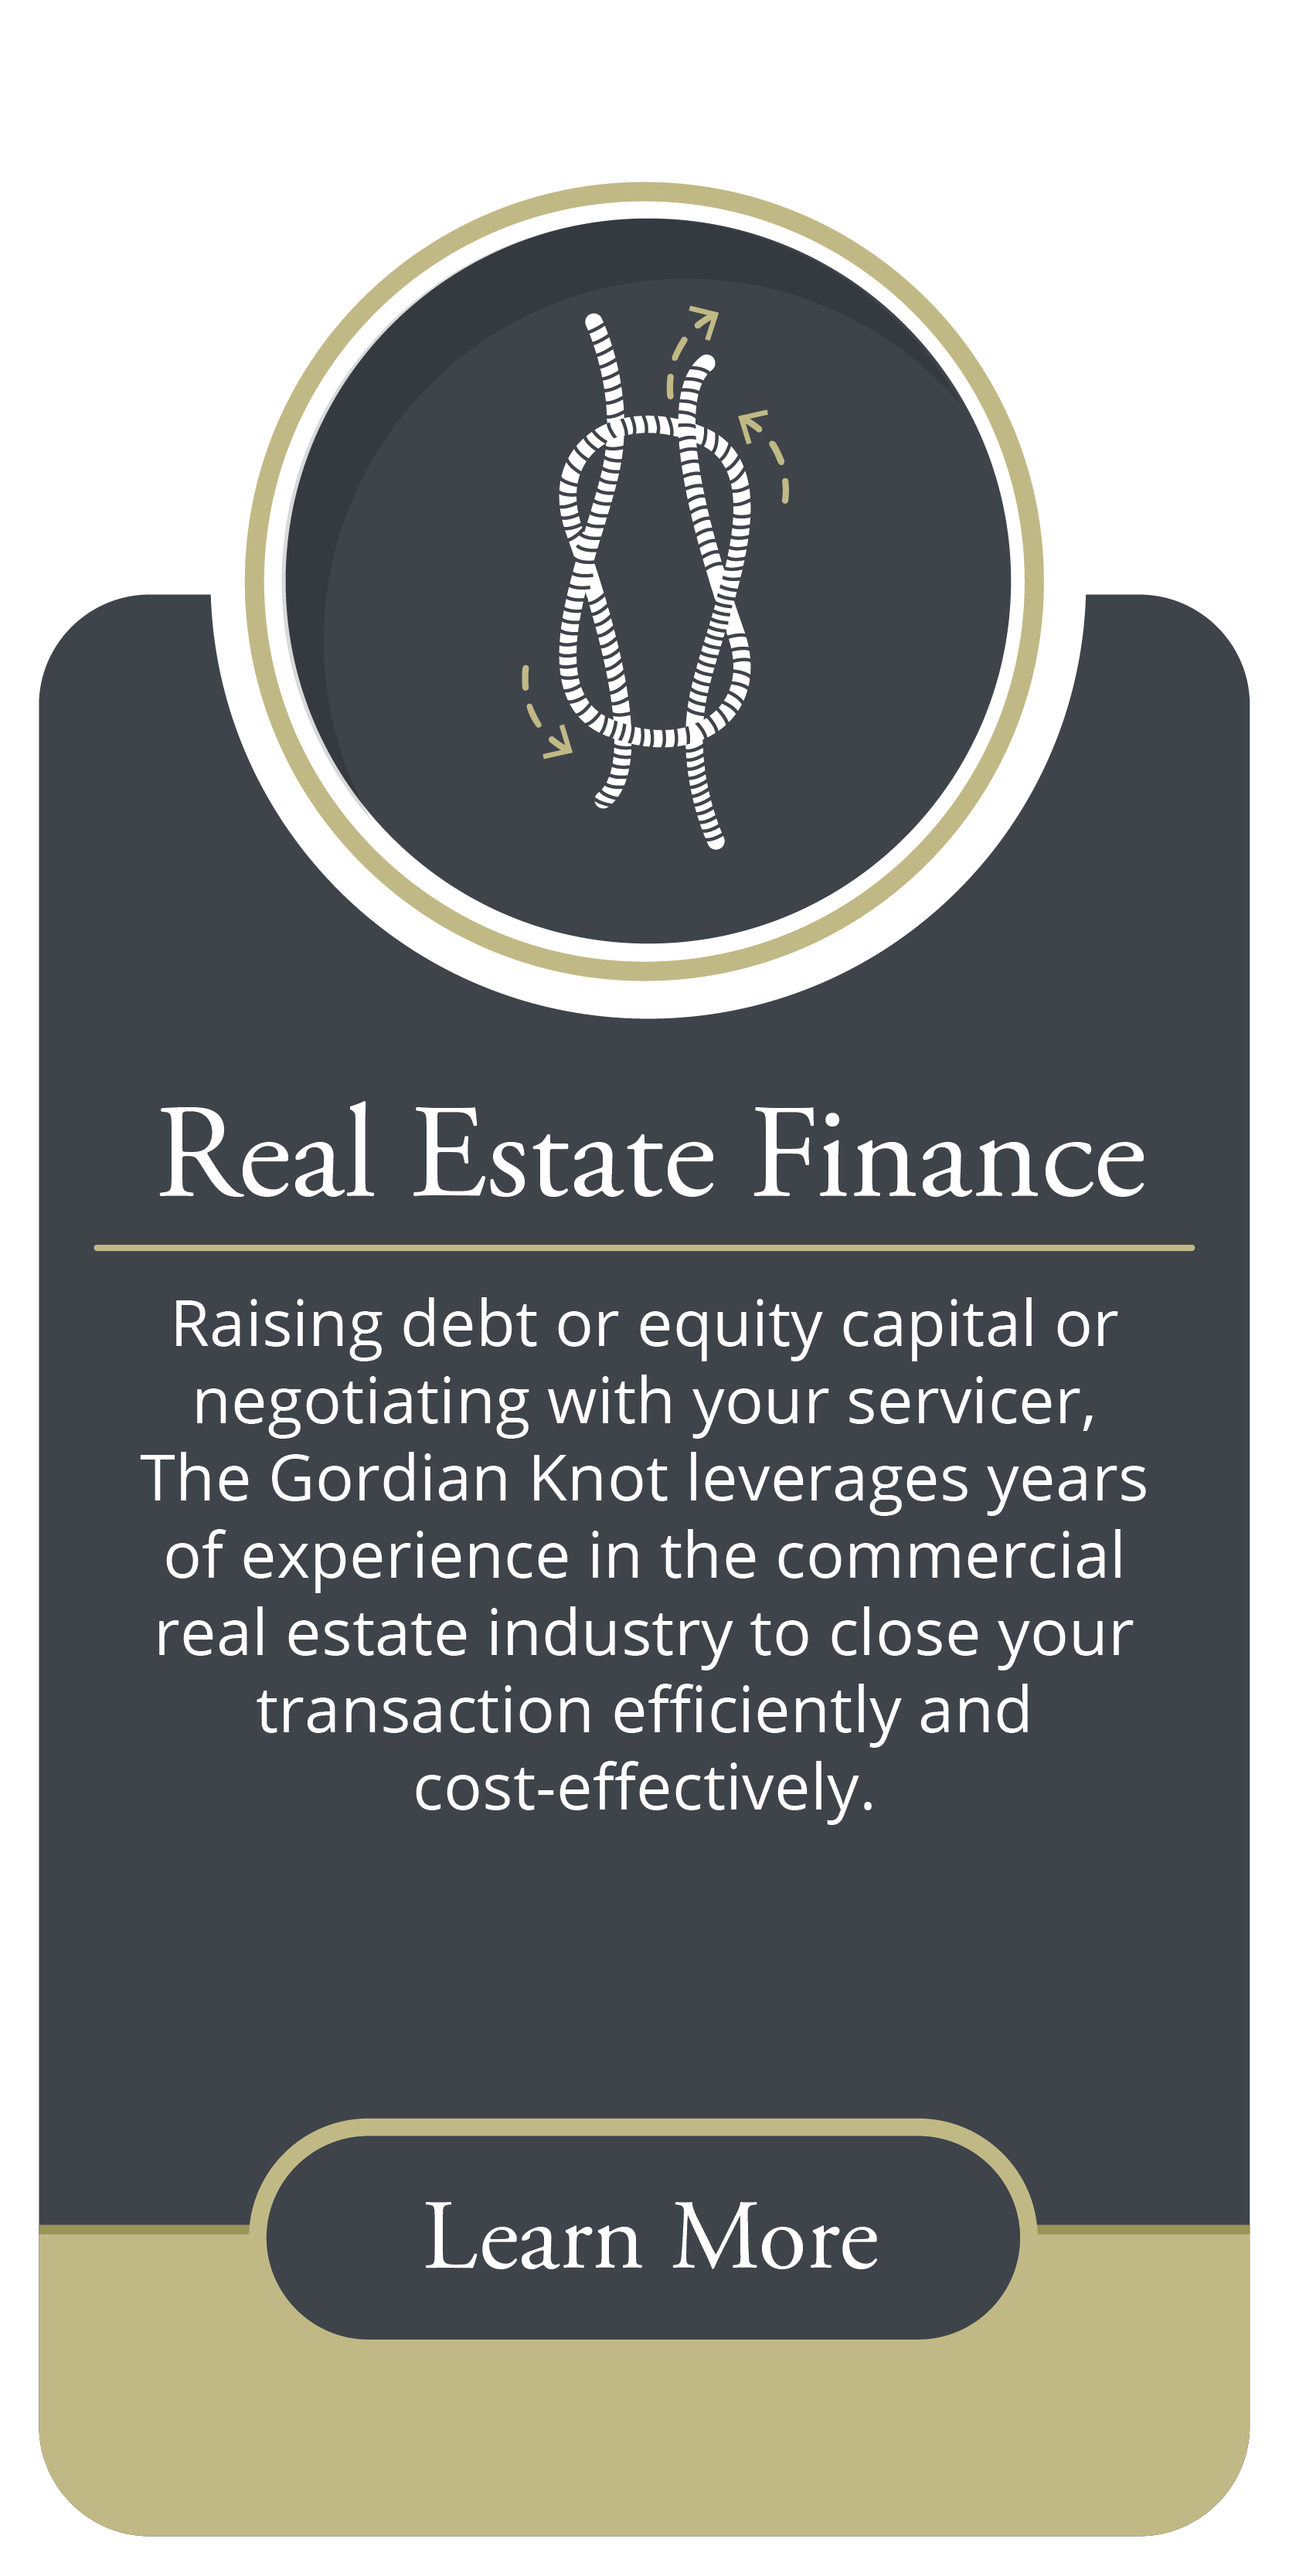 GordianKnot_service_cre_finance.png